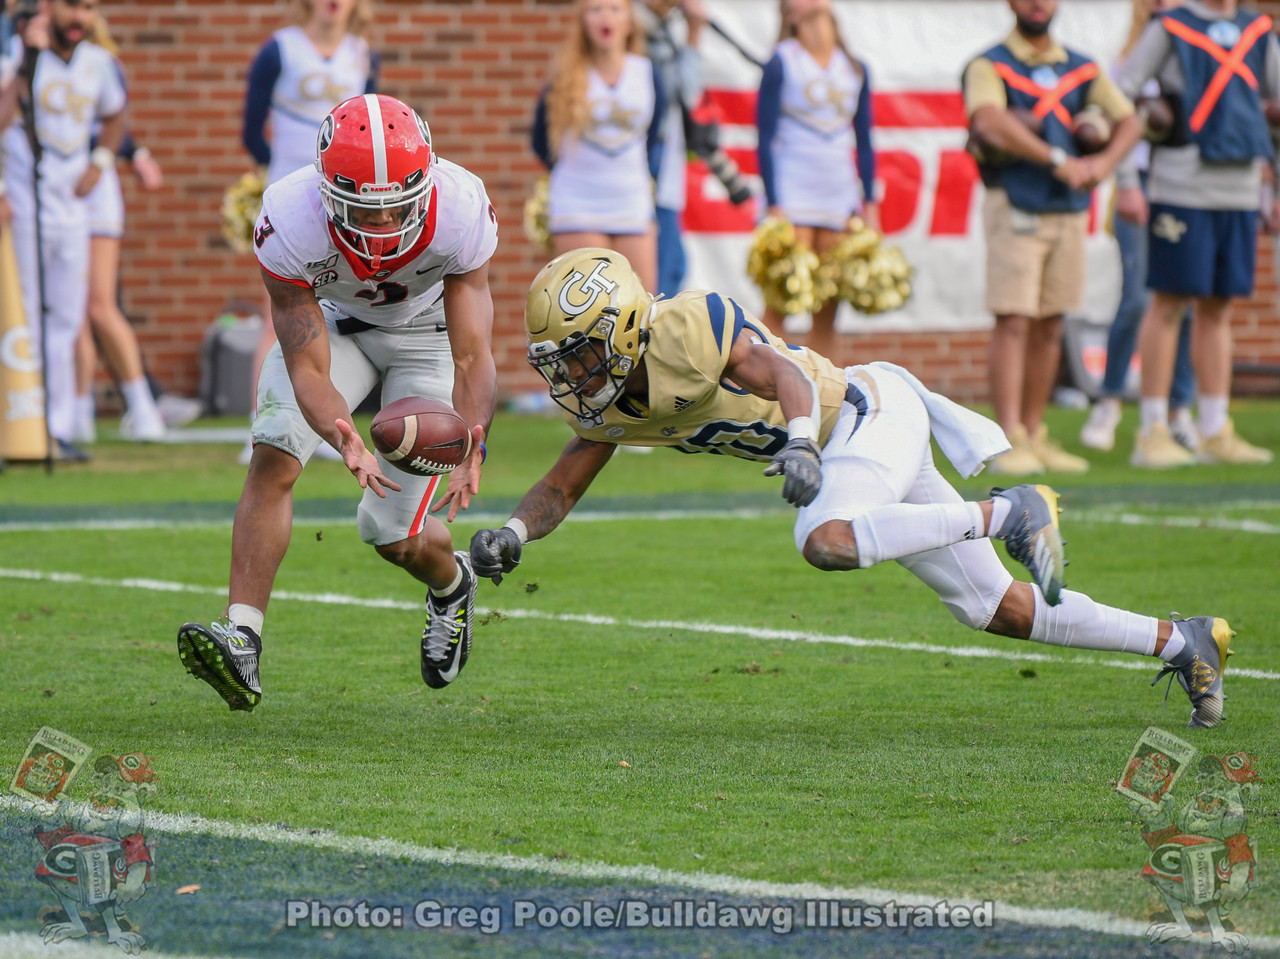 UGA defensive back Tyson Campbell (3) recovers a muffed punt by the Yellow Jackets in the fourth quarter of the Georgia Tech, Saturday, November 30, 2019